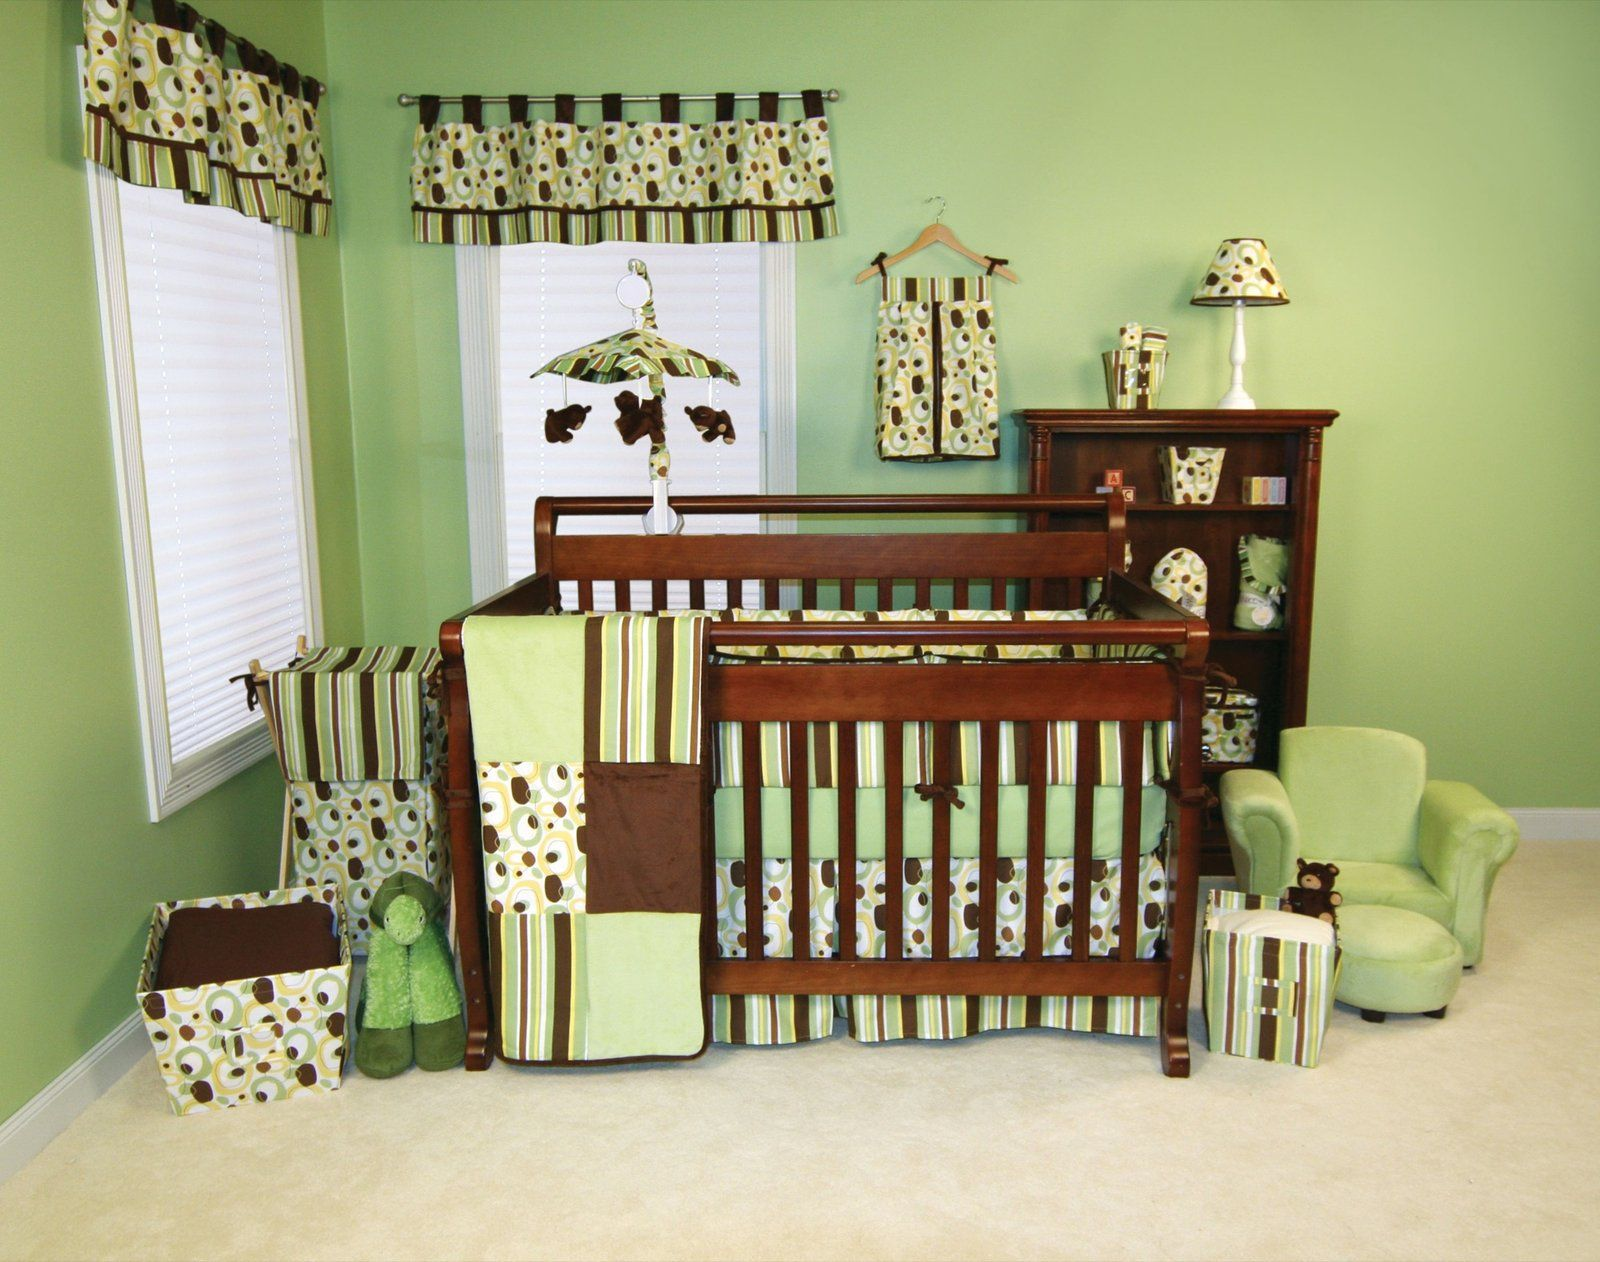 Themes for baby nurserys green theme baby room decor for Baby designs for rooms